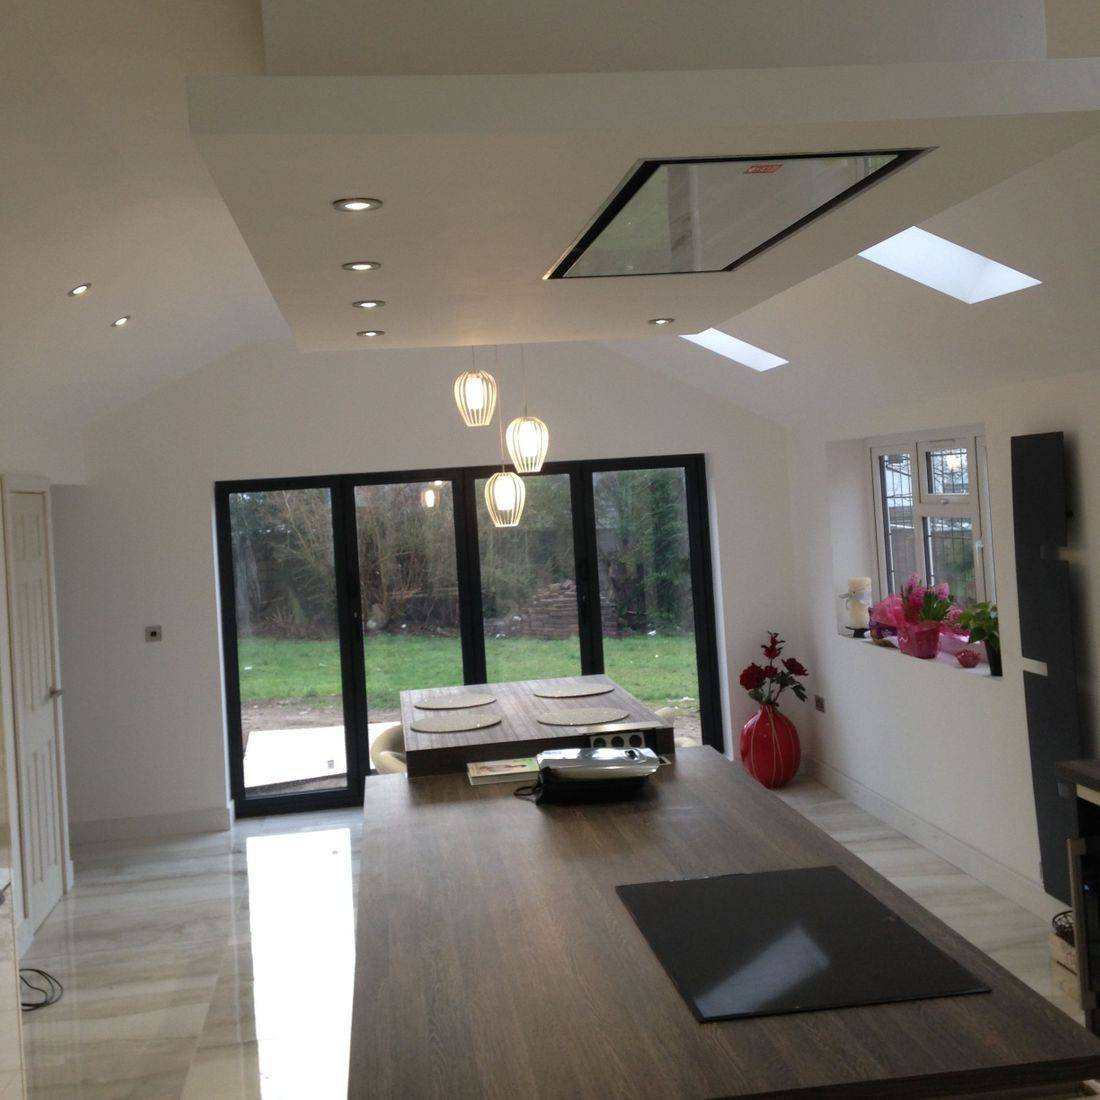 House extension in Nunthorpe with Bi-fold doors